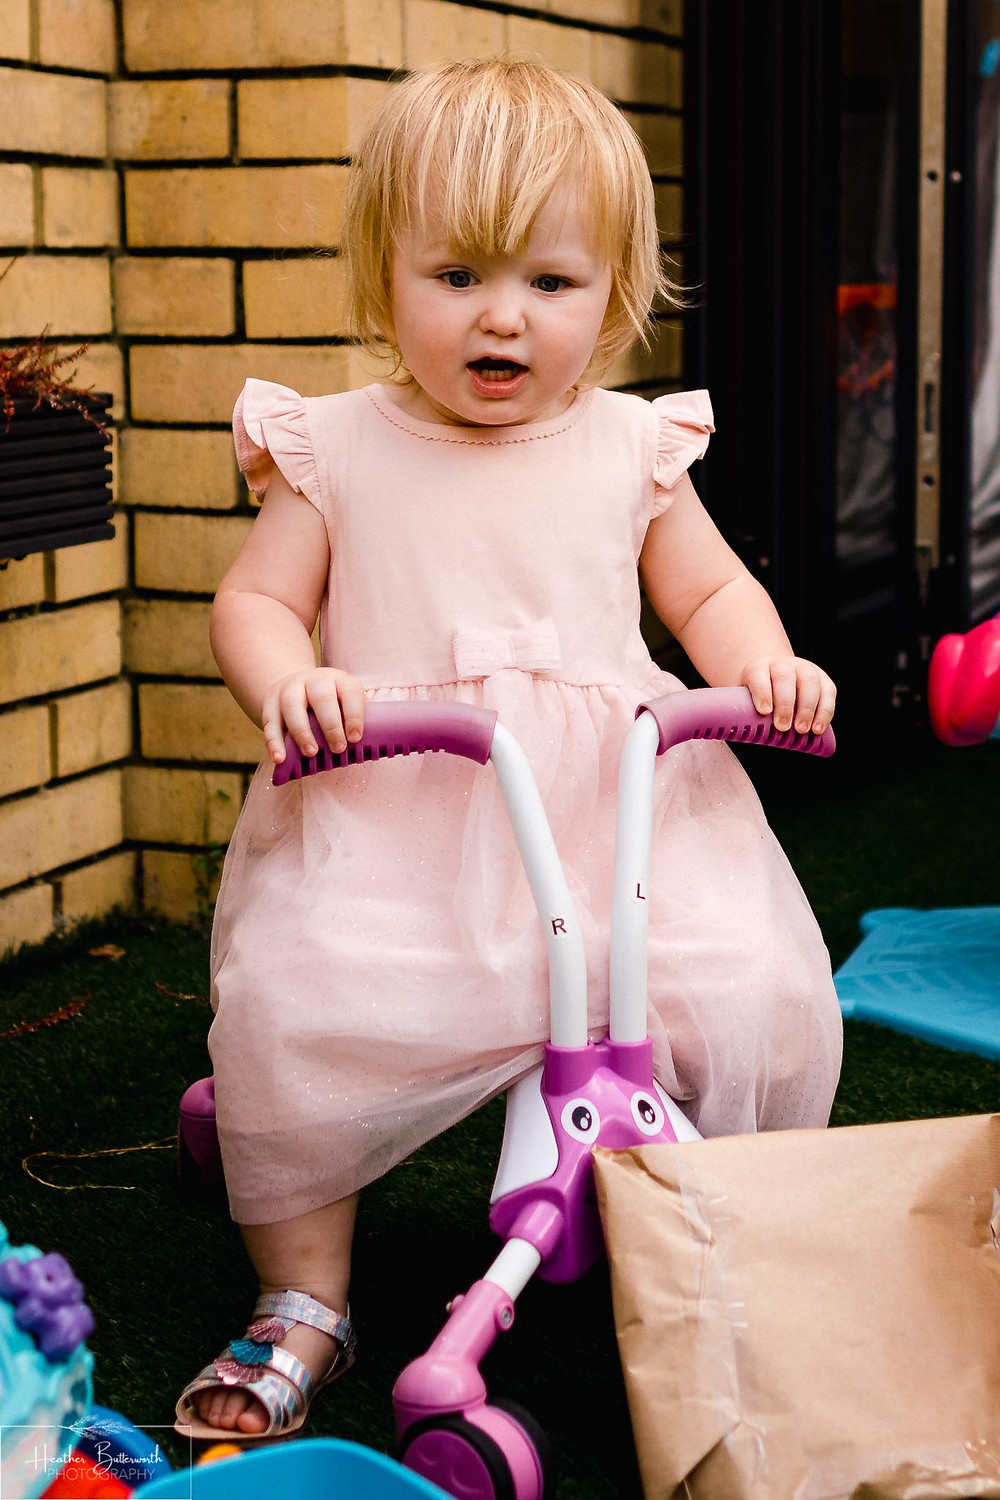 little girl in her new dress on her new bike playing happily